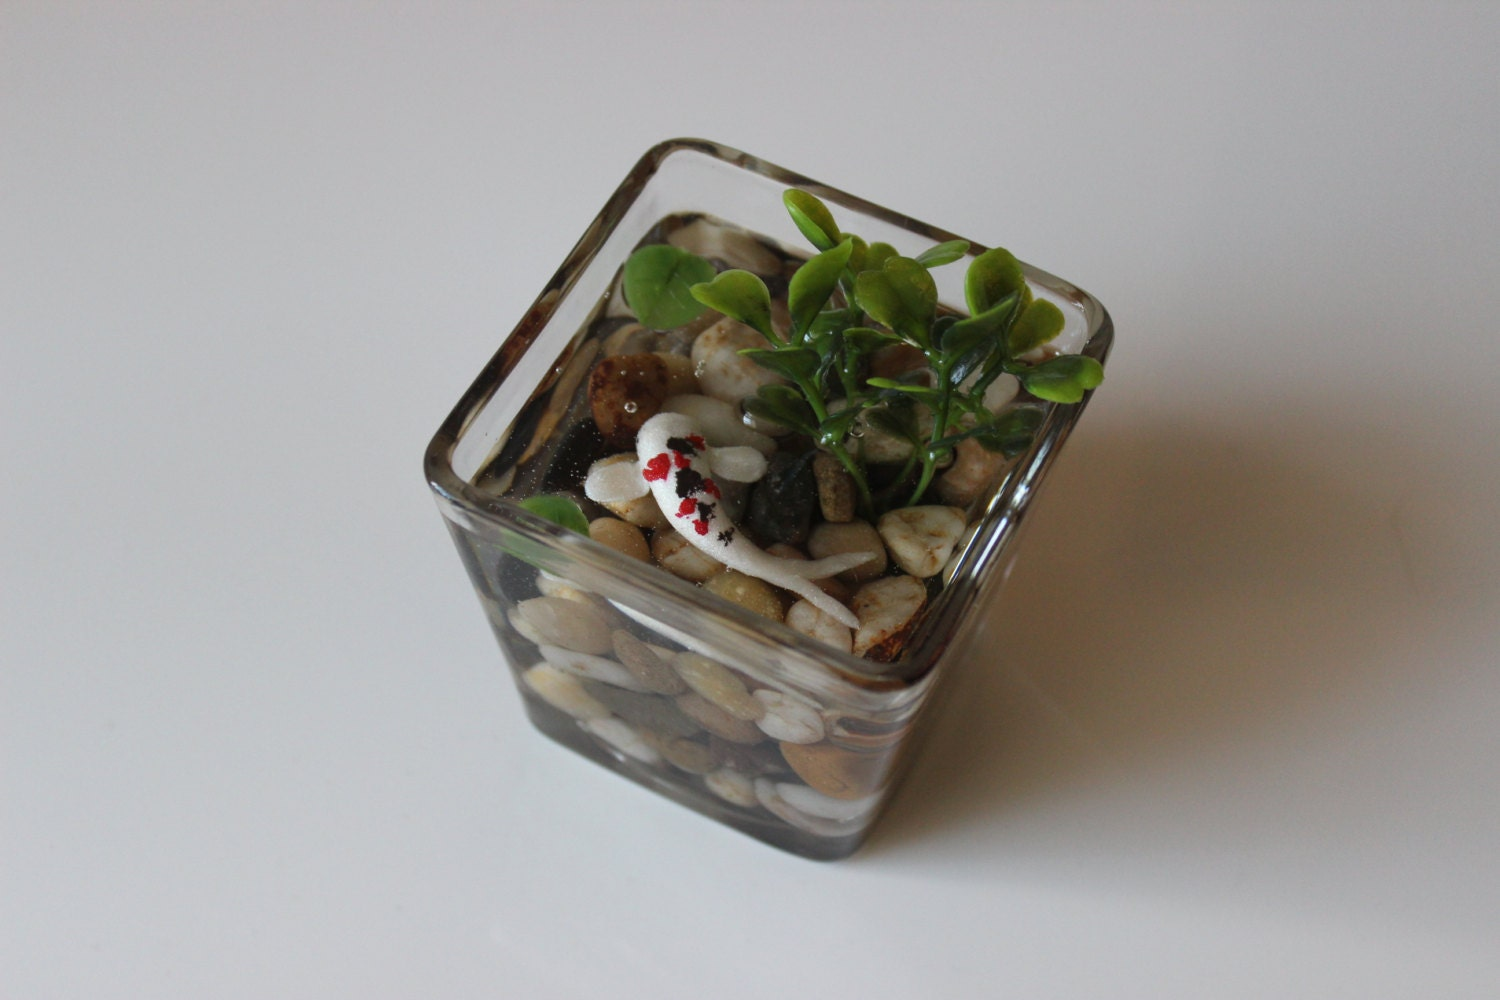 Miniature koi pond in glass bowl fake koi pond by for Artificial koi fish for ponds